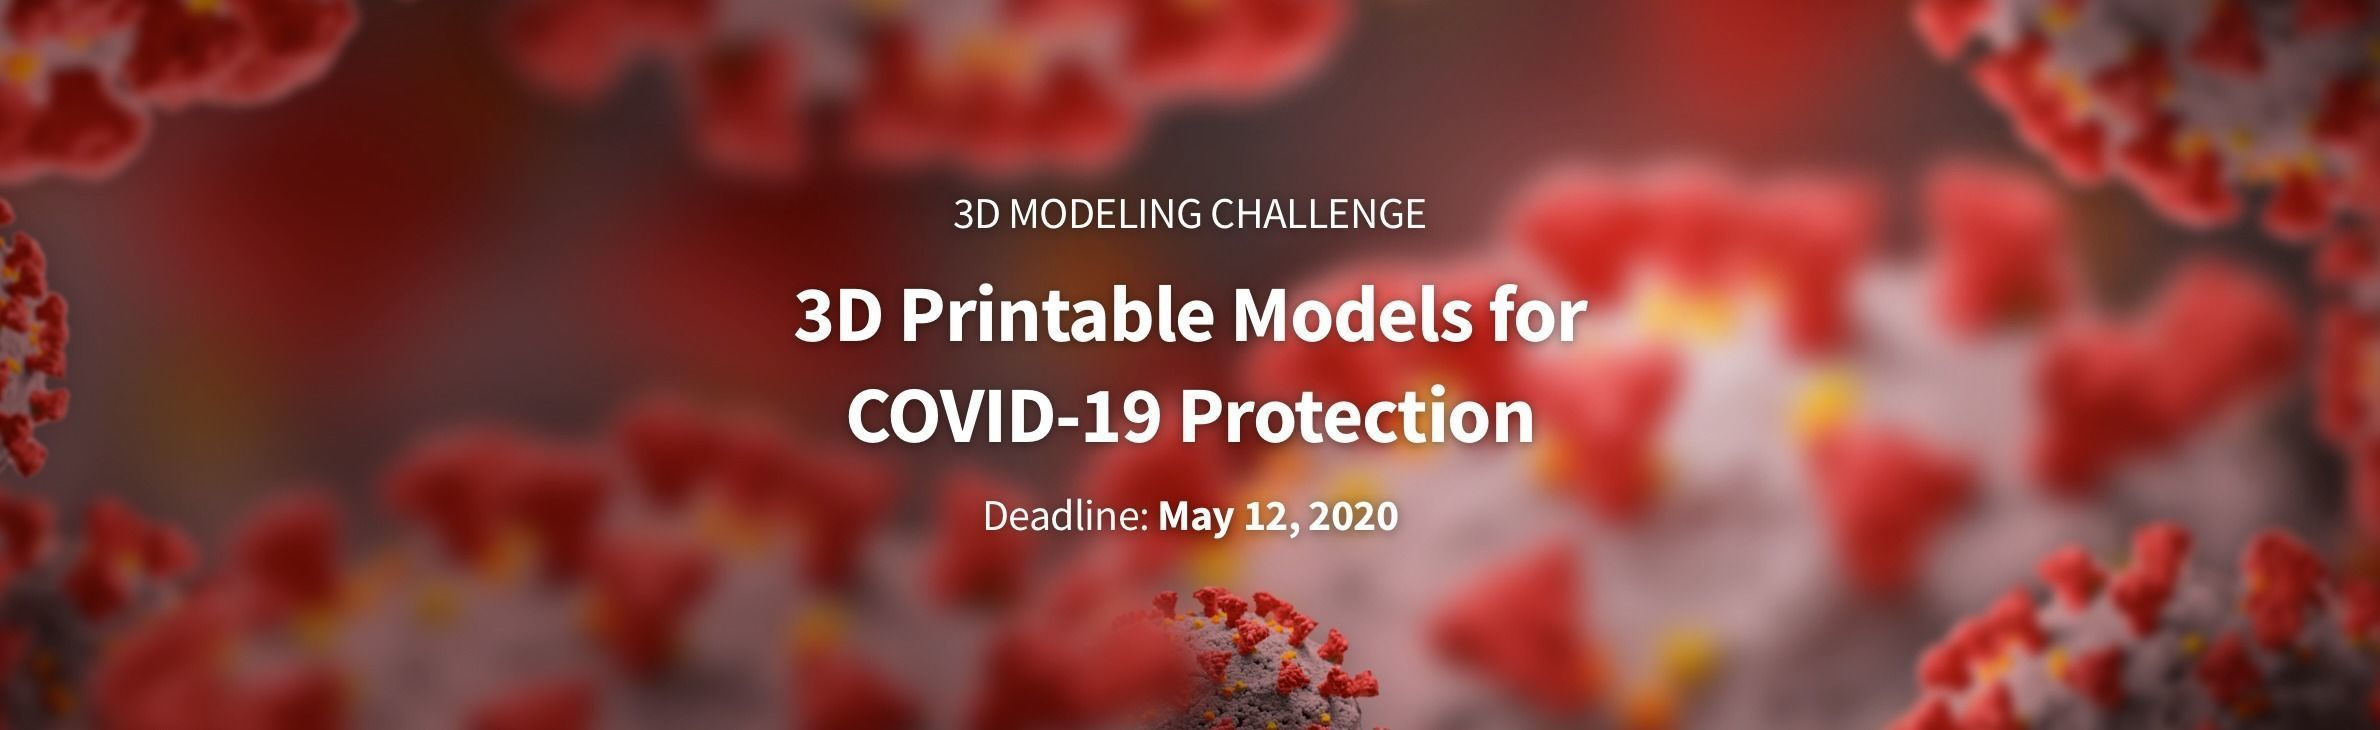 3D Print Challenge: Resources for COVID-19 Protection